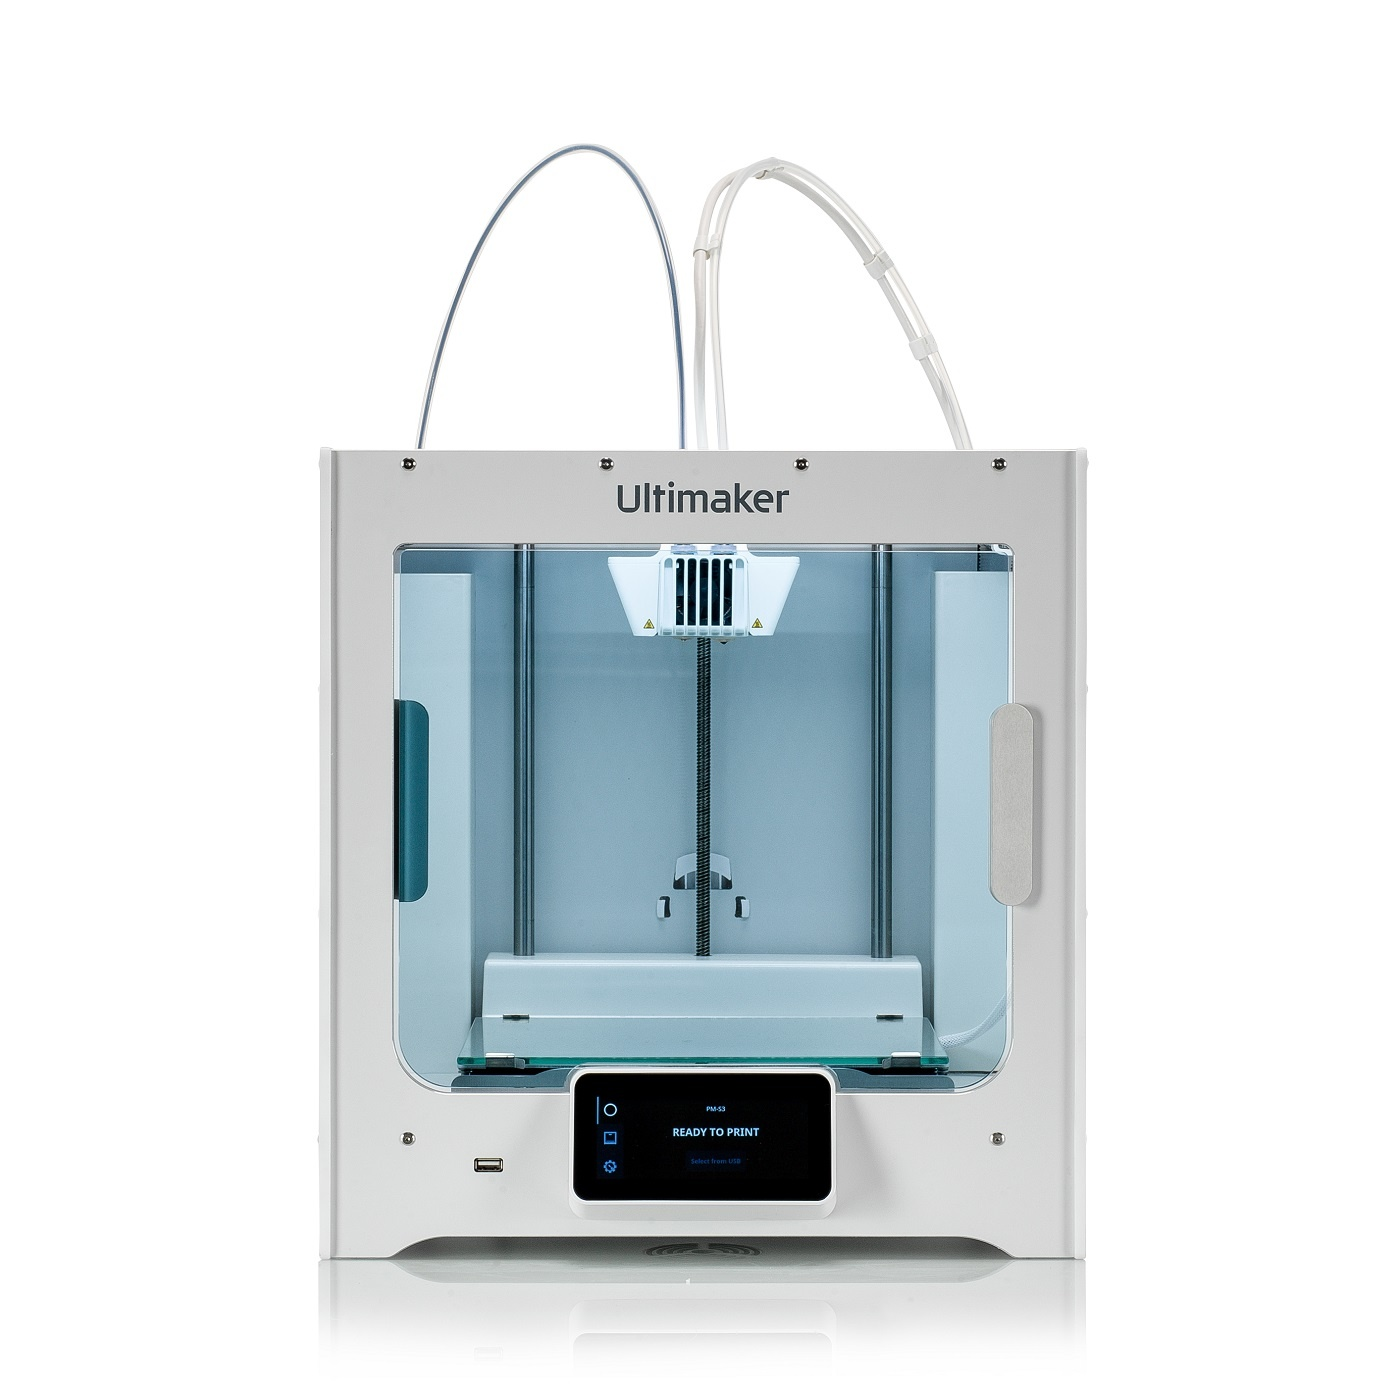 Ultimaker Ultimaker S3 VAT included,call for 20% anniversary package discount